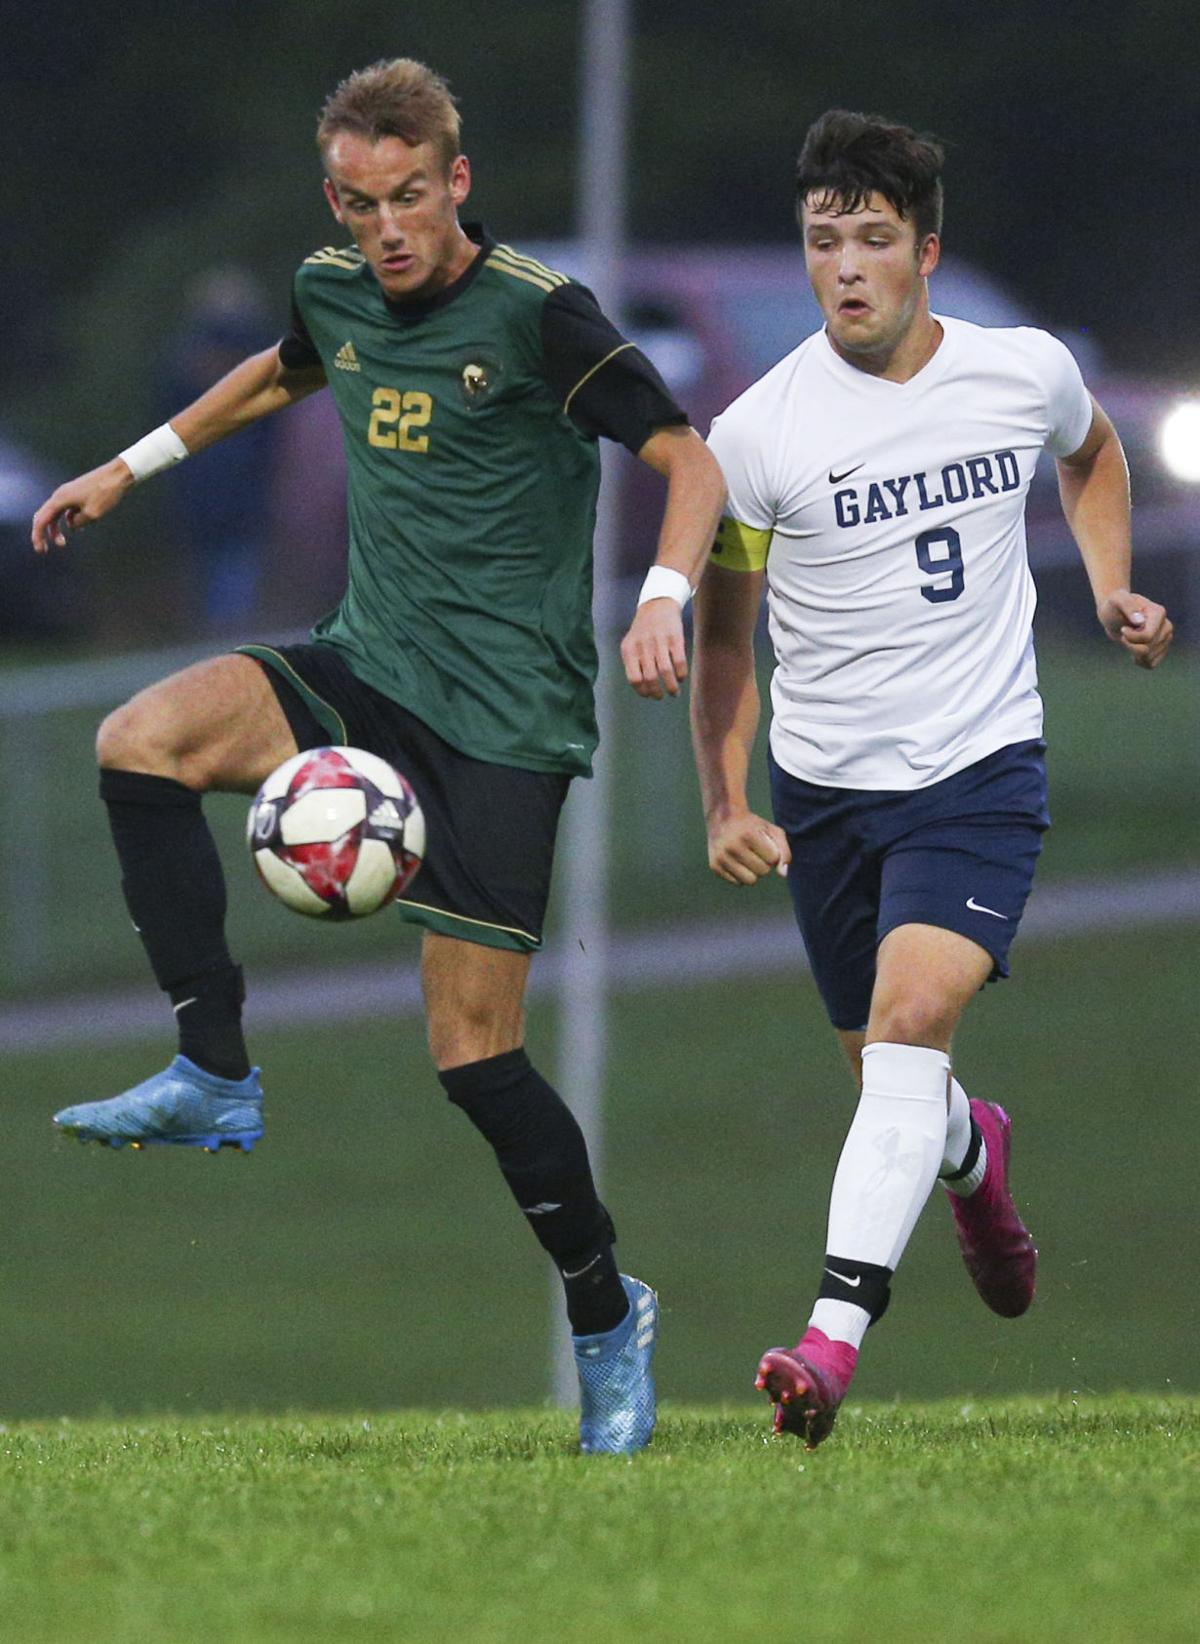 tcr-100219-TCwestsoccer 1